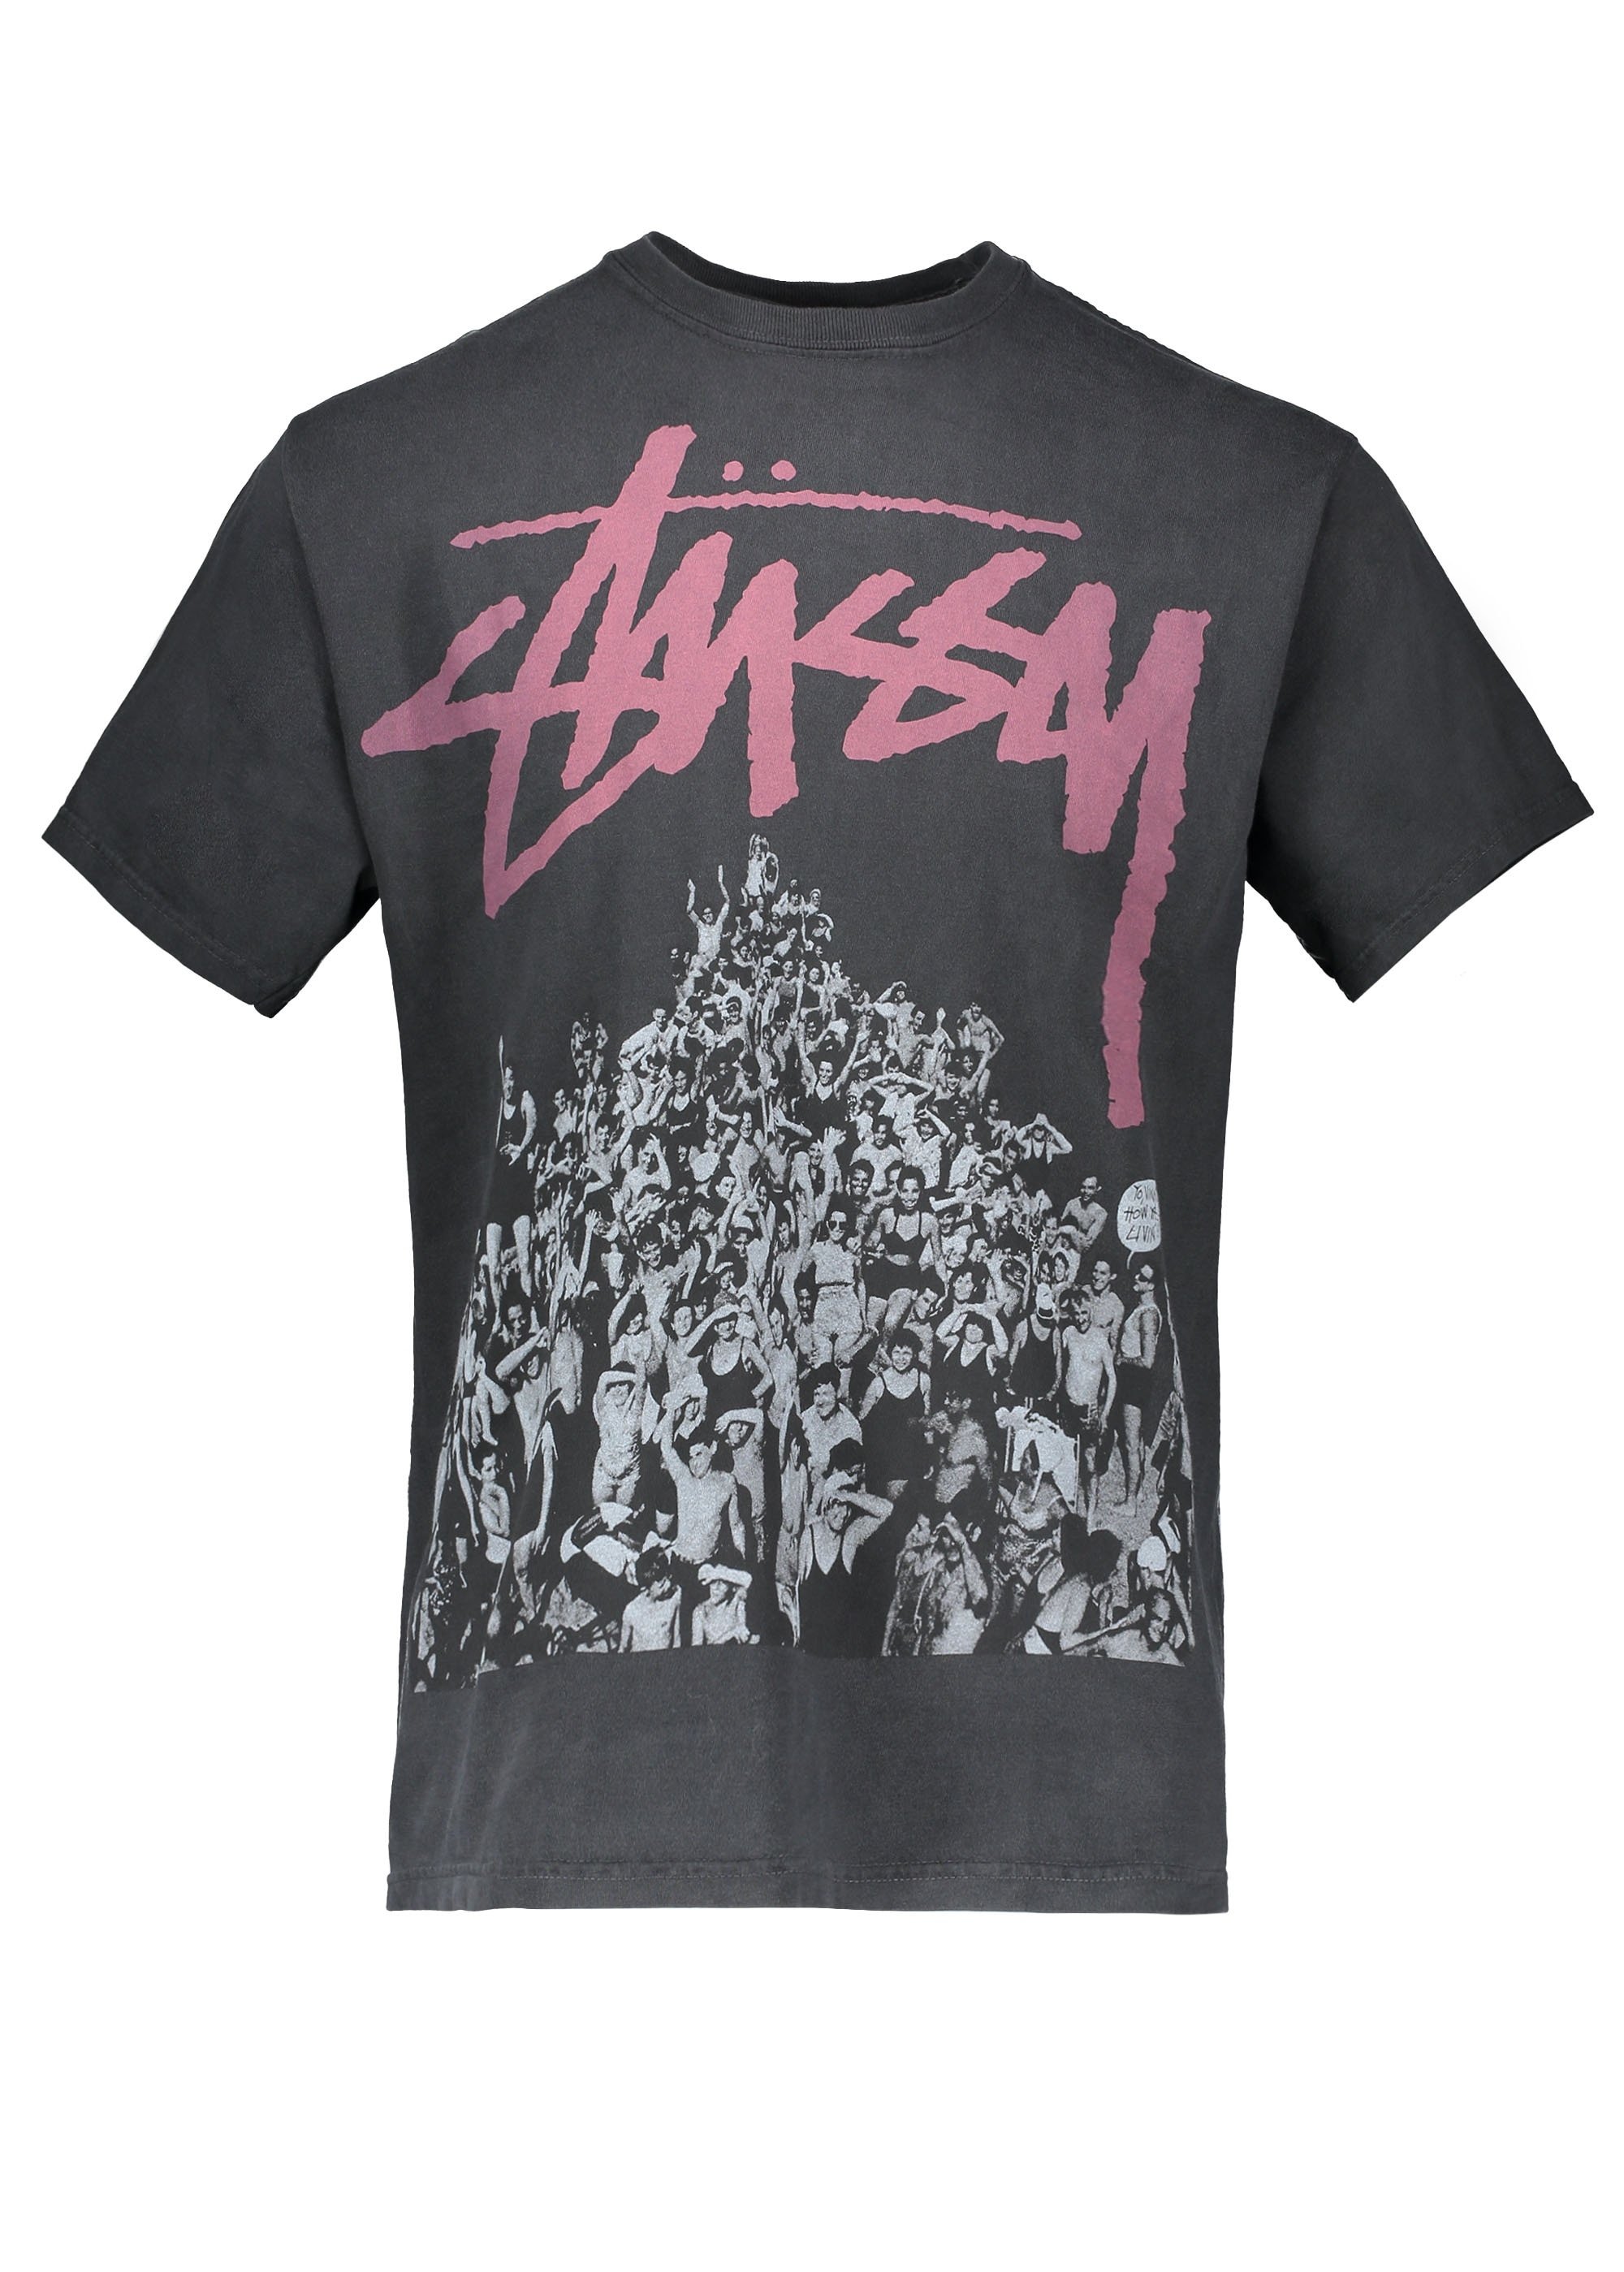 Stussy Beach Mob Pigment Dyed Tee - Black - Triads Mens from Triads UK a97f388fb